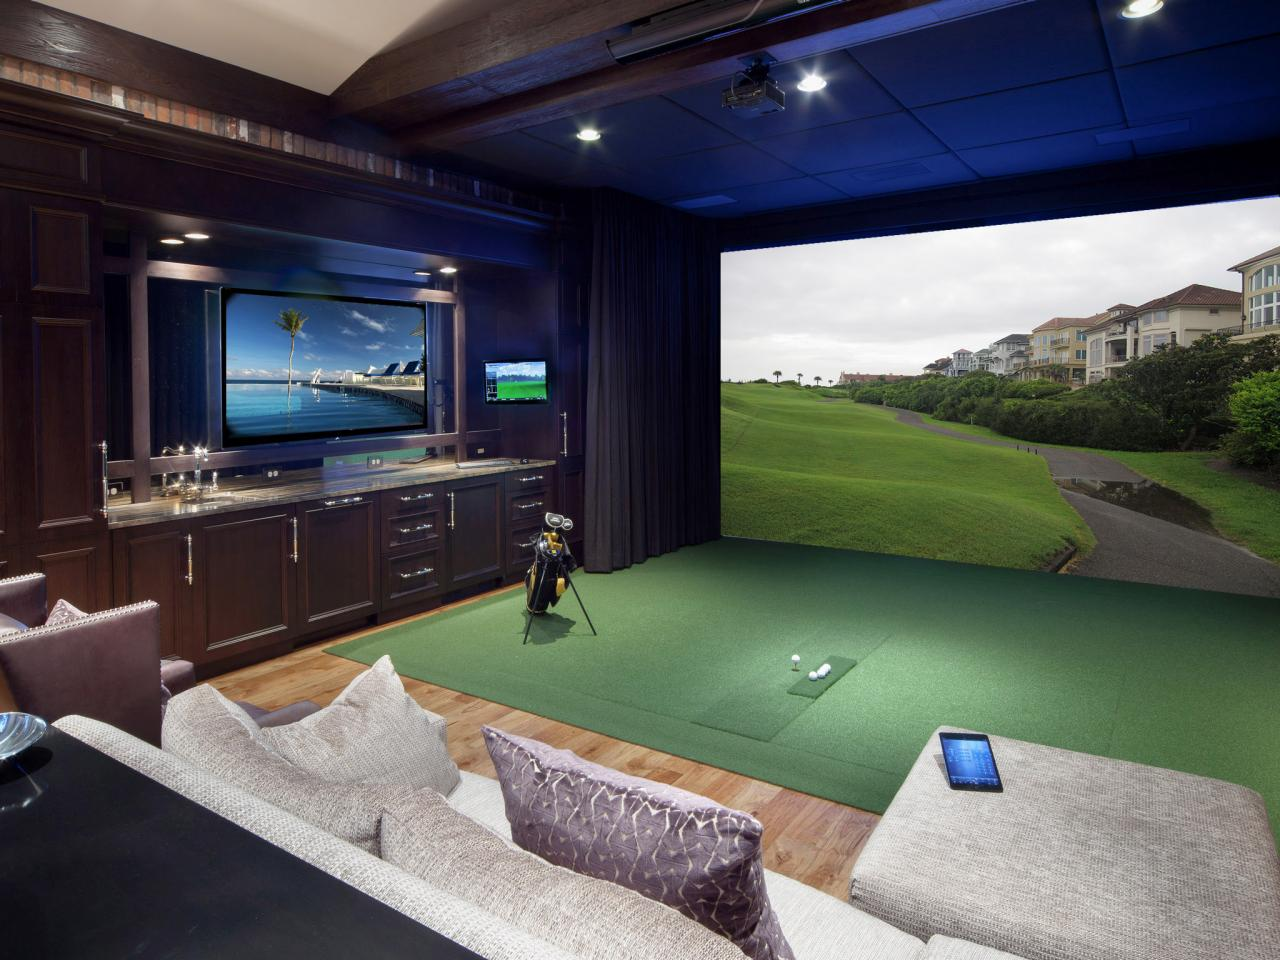 Man Cave Weight Room : Best man cave ideas and designs for